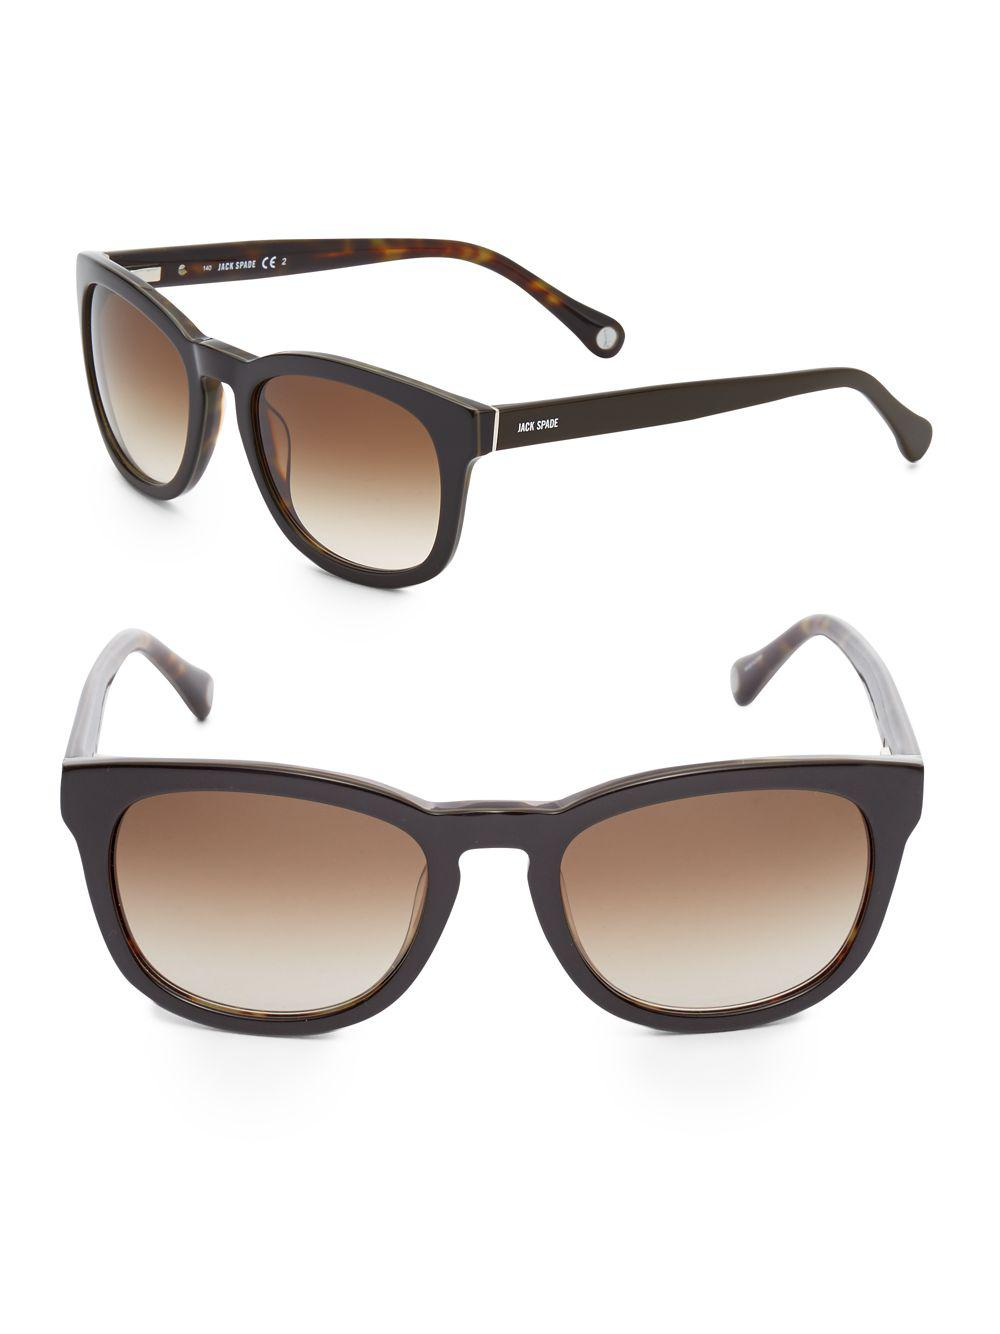 Lyst - Ray-Ban 0rb3614n Round Sunglasses Demi Gloss Copper